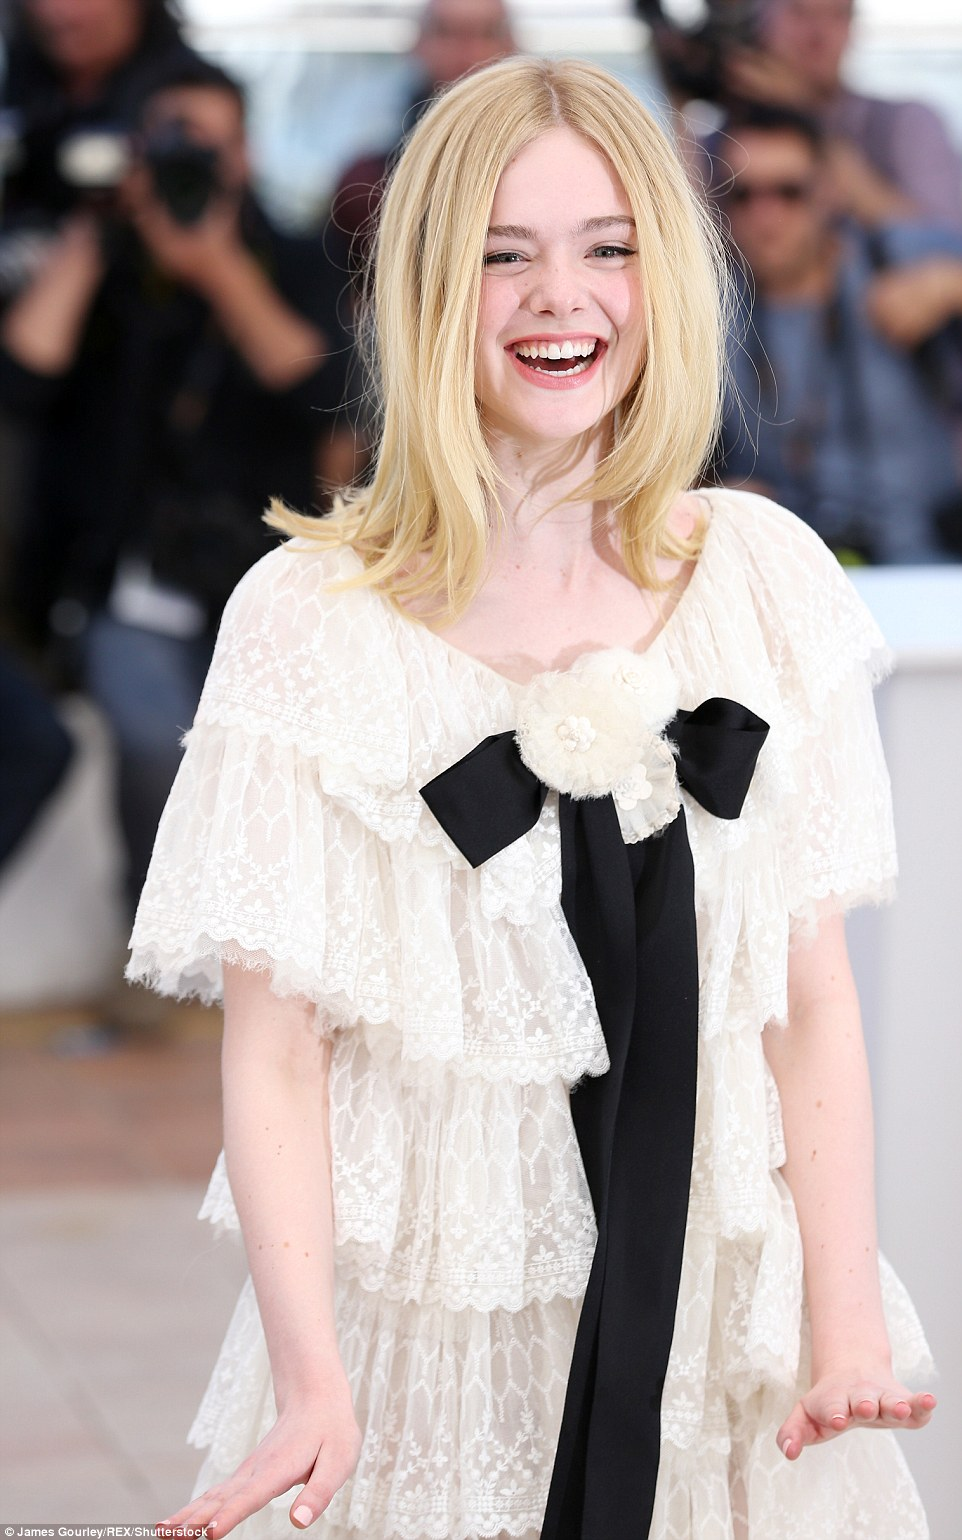 Hollywood favourite: Elle has been working in the film industry for years and is a firm favourite with directors